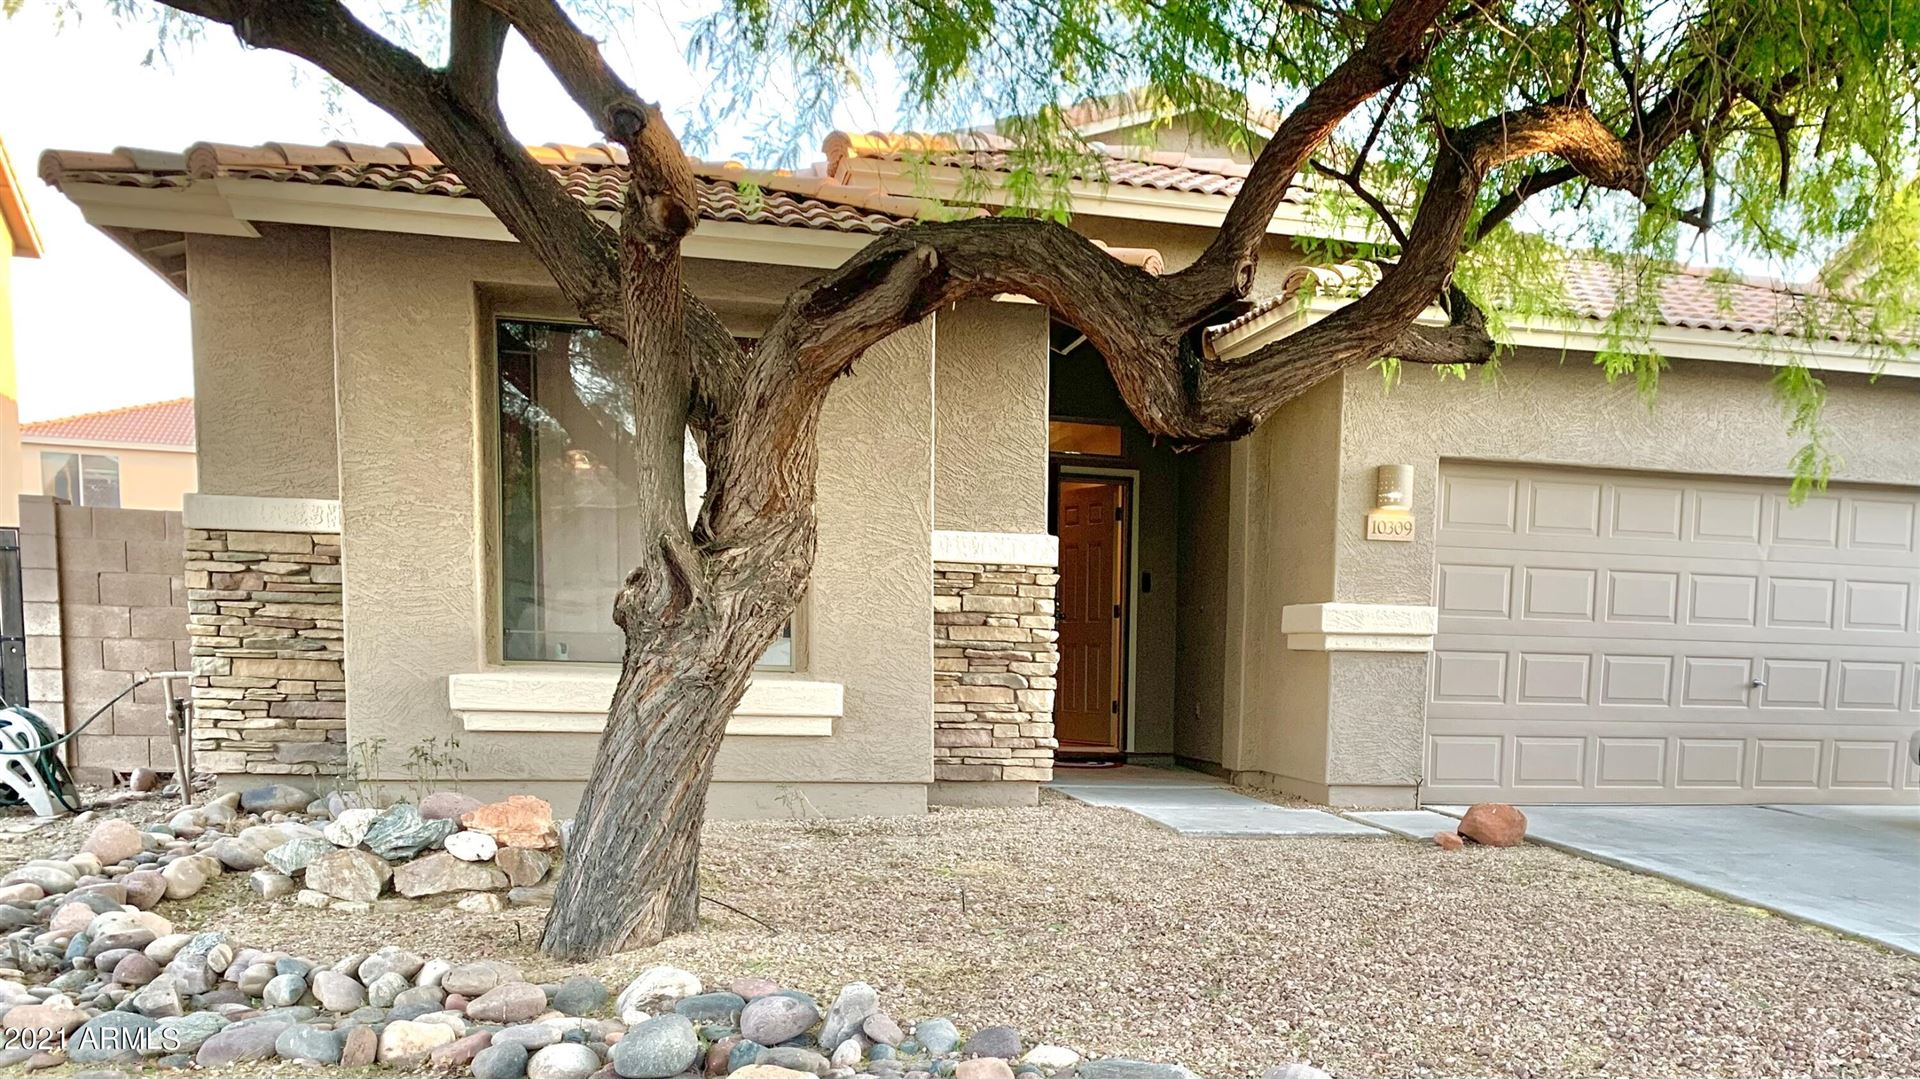 Photo of 10309 W Pioneer St. Street, Tolleson, AZ 85353 (MLS # 6228715)